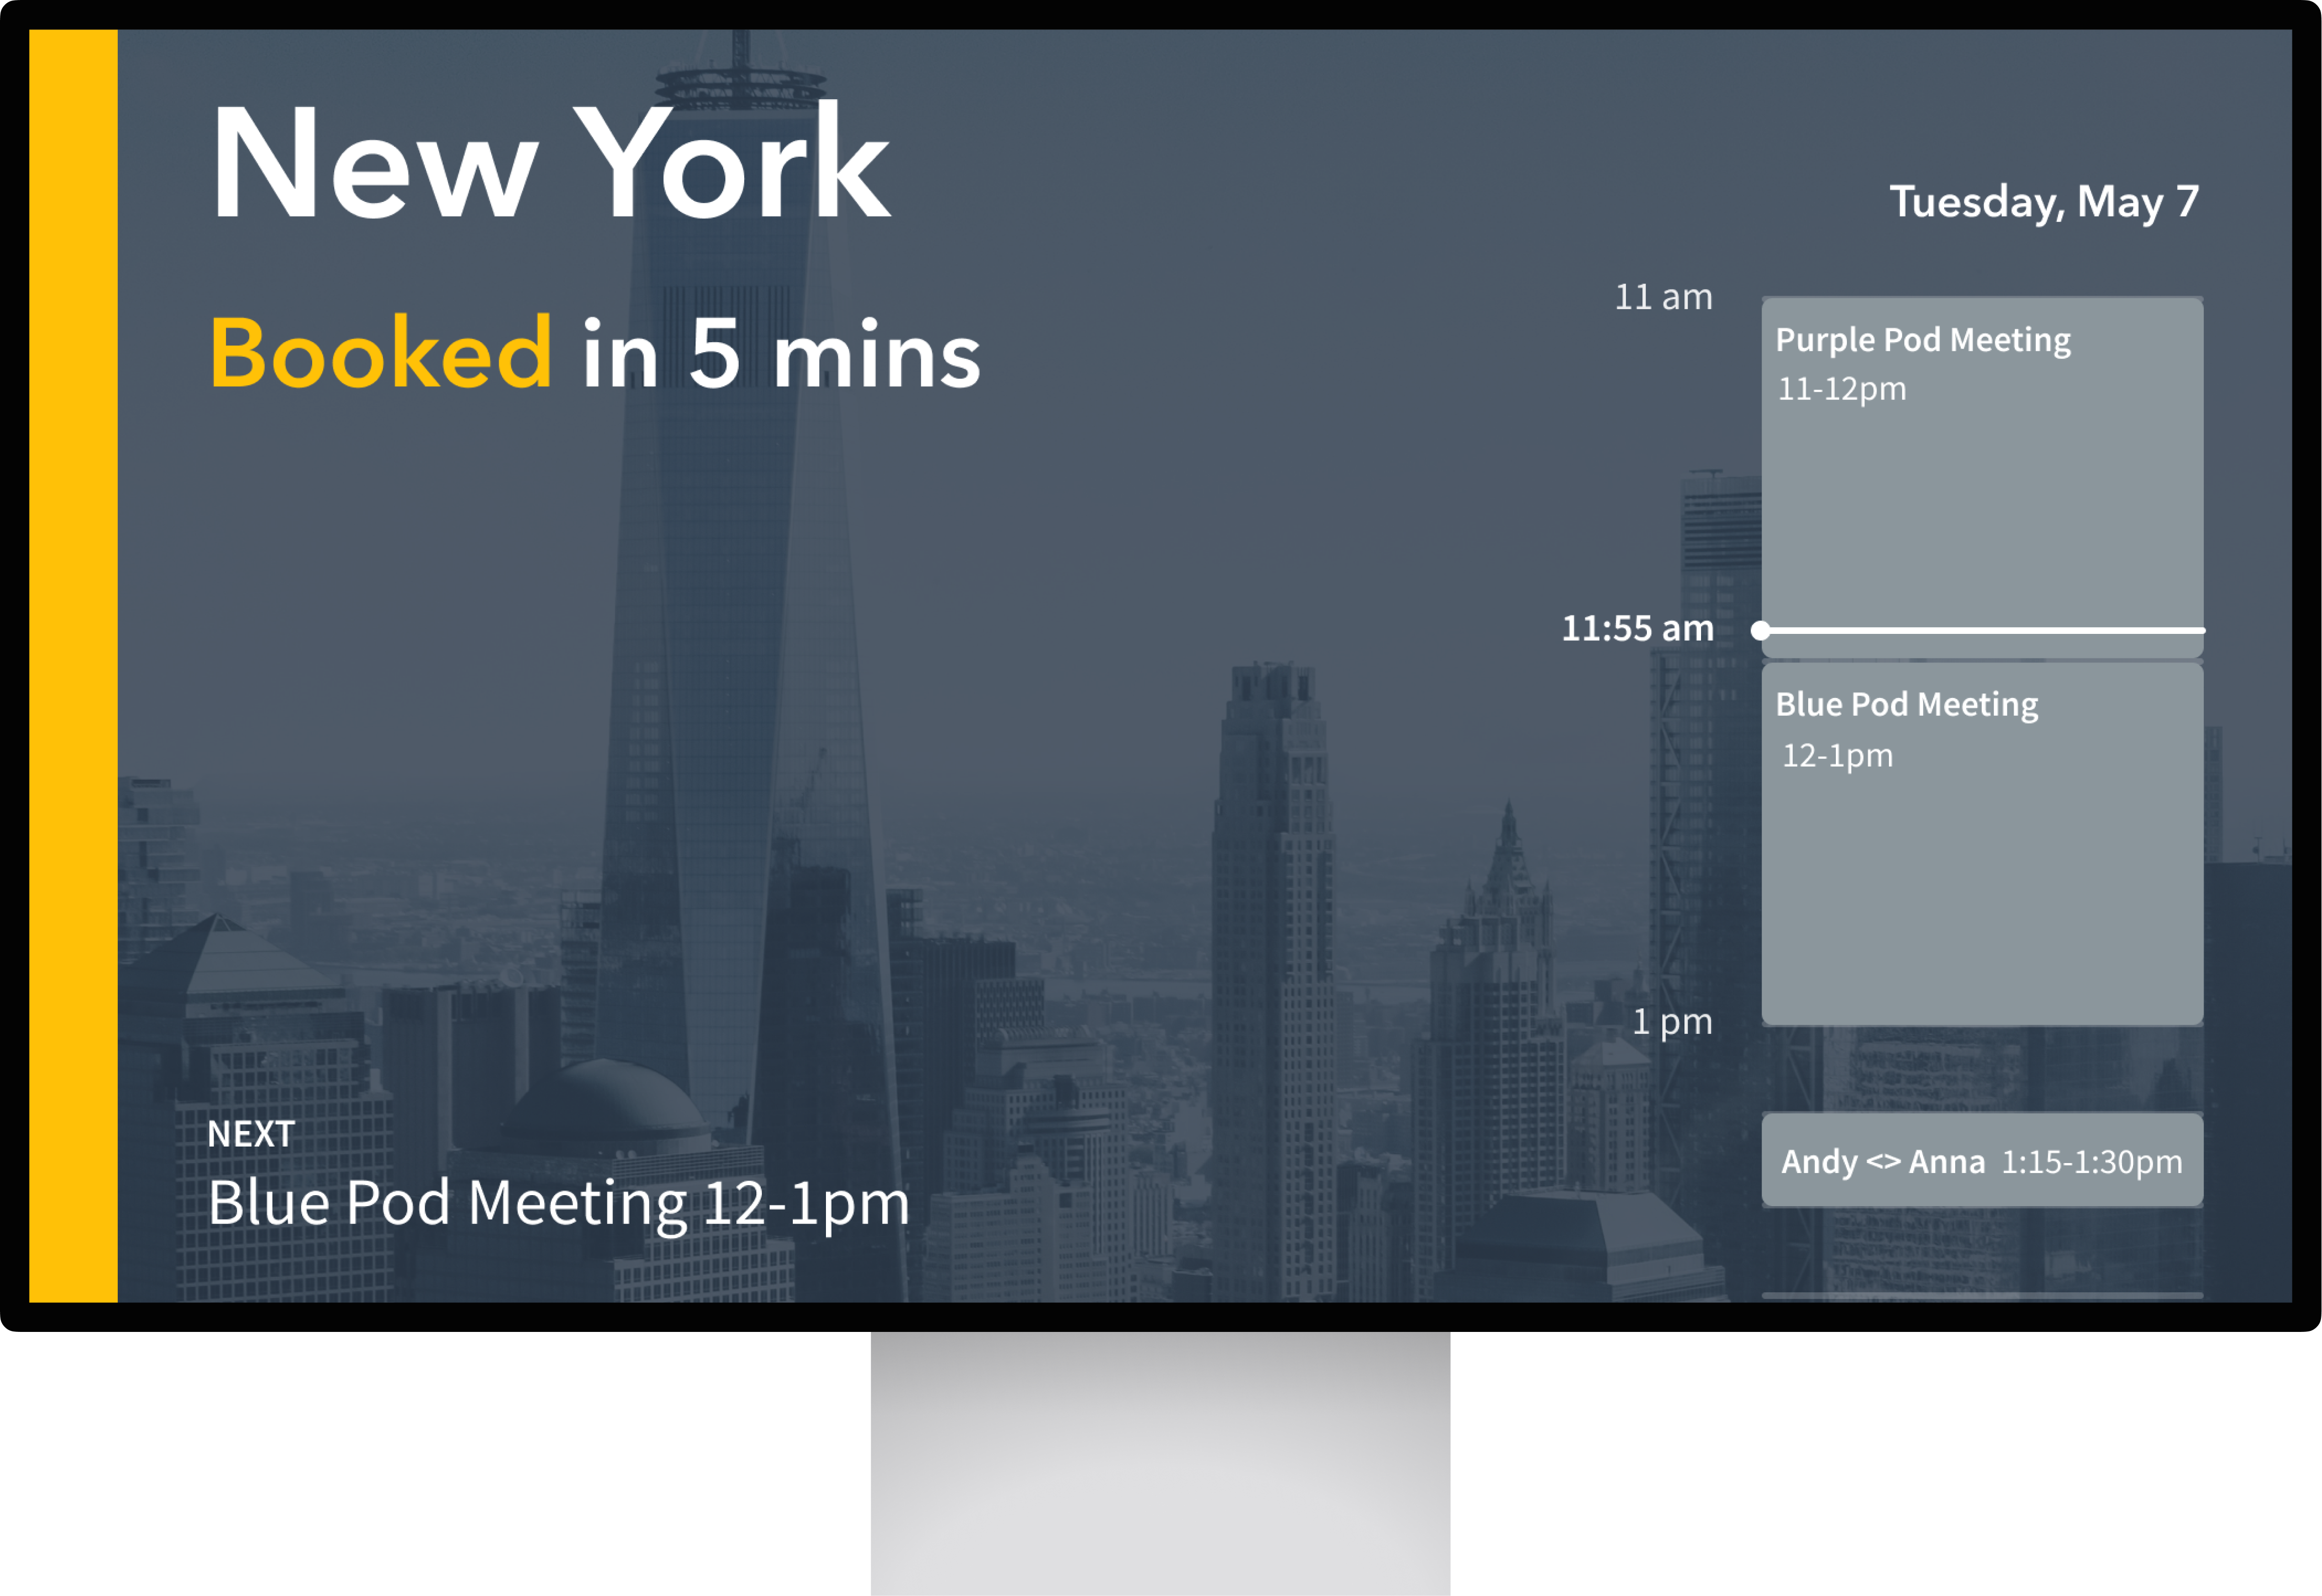 Room scheduling display with reserved meetings